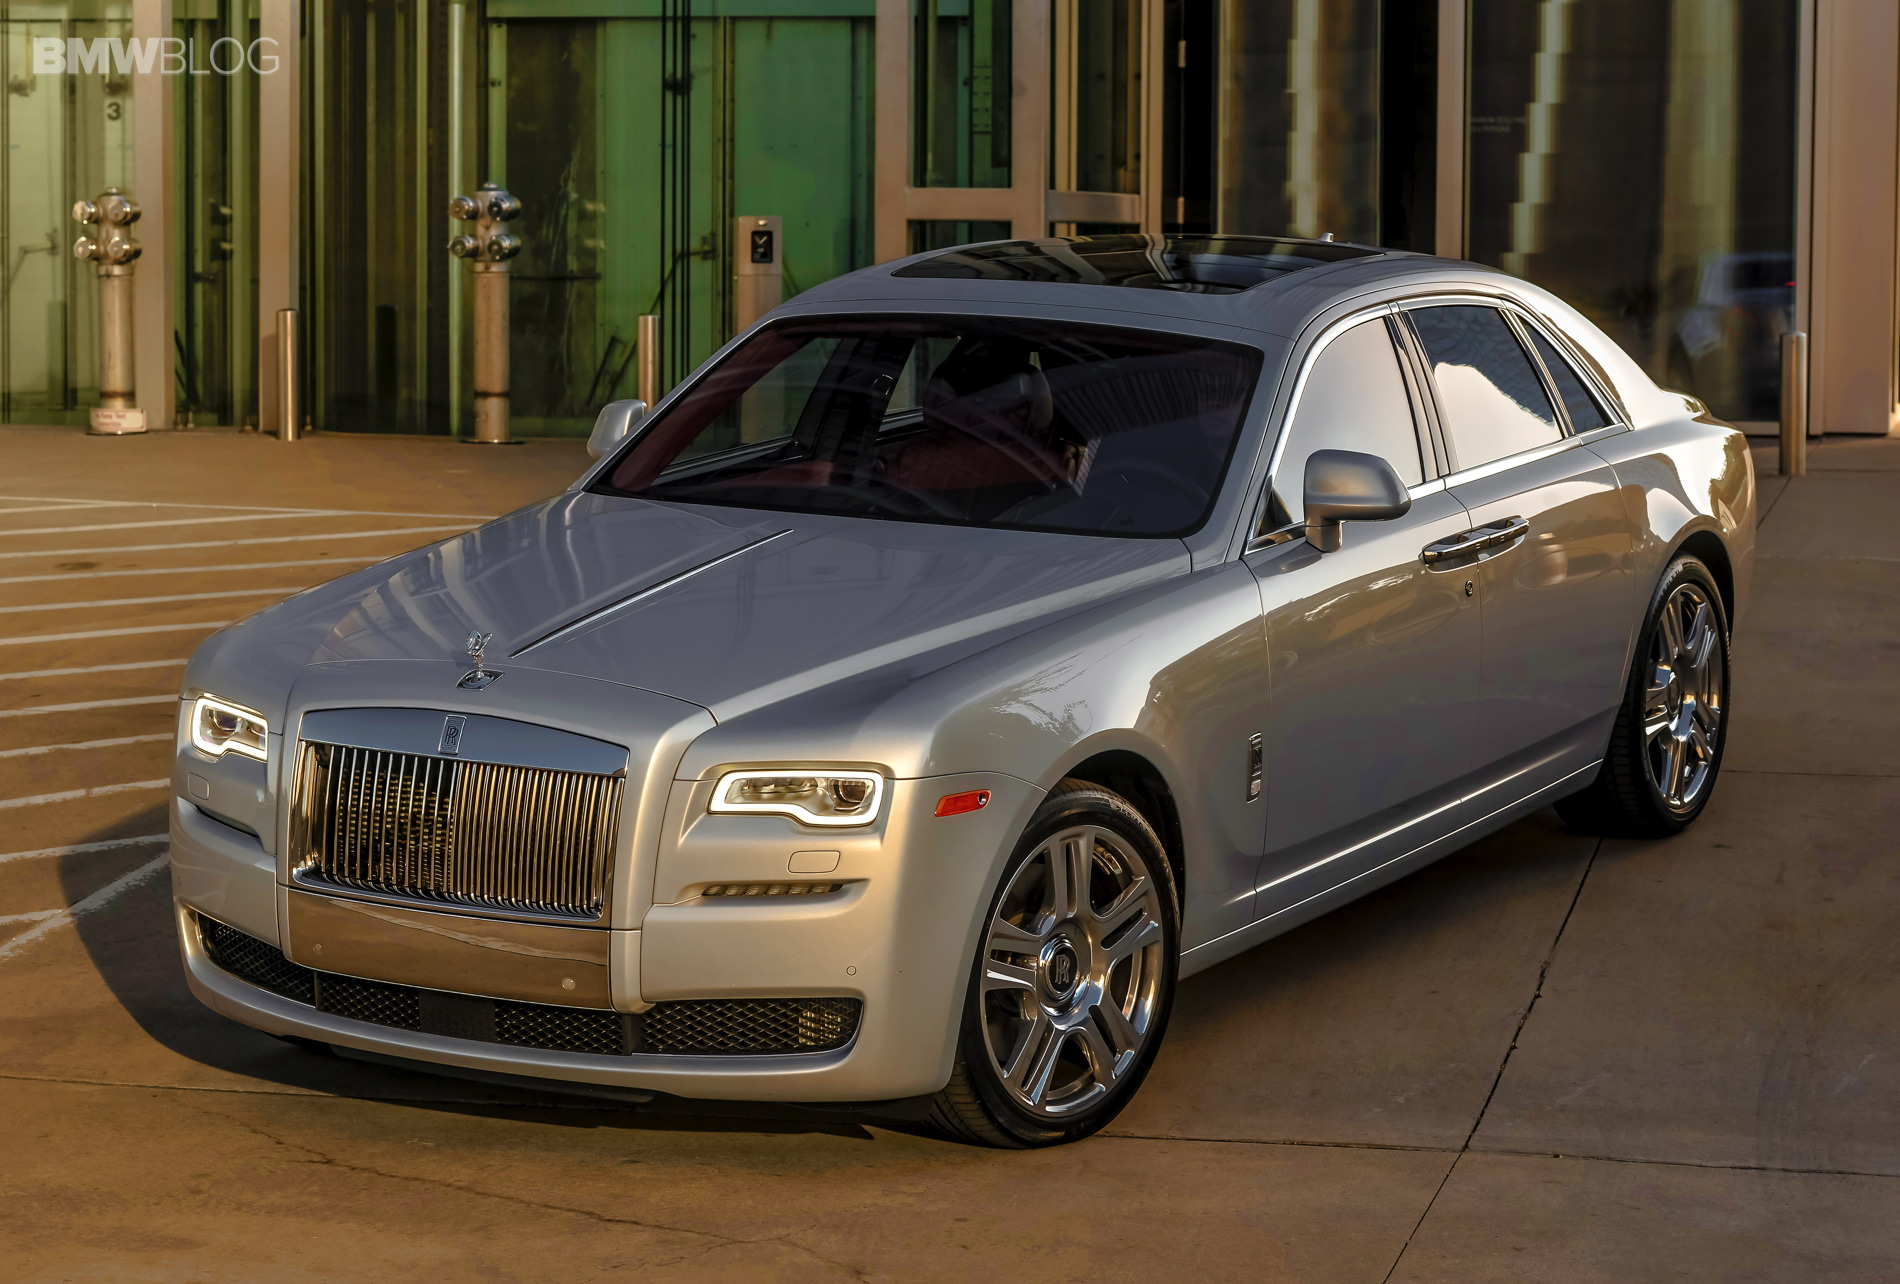 2015 Rolls Royce Phantom #8